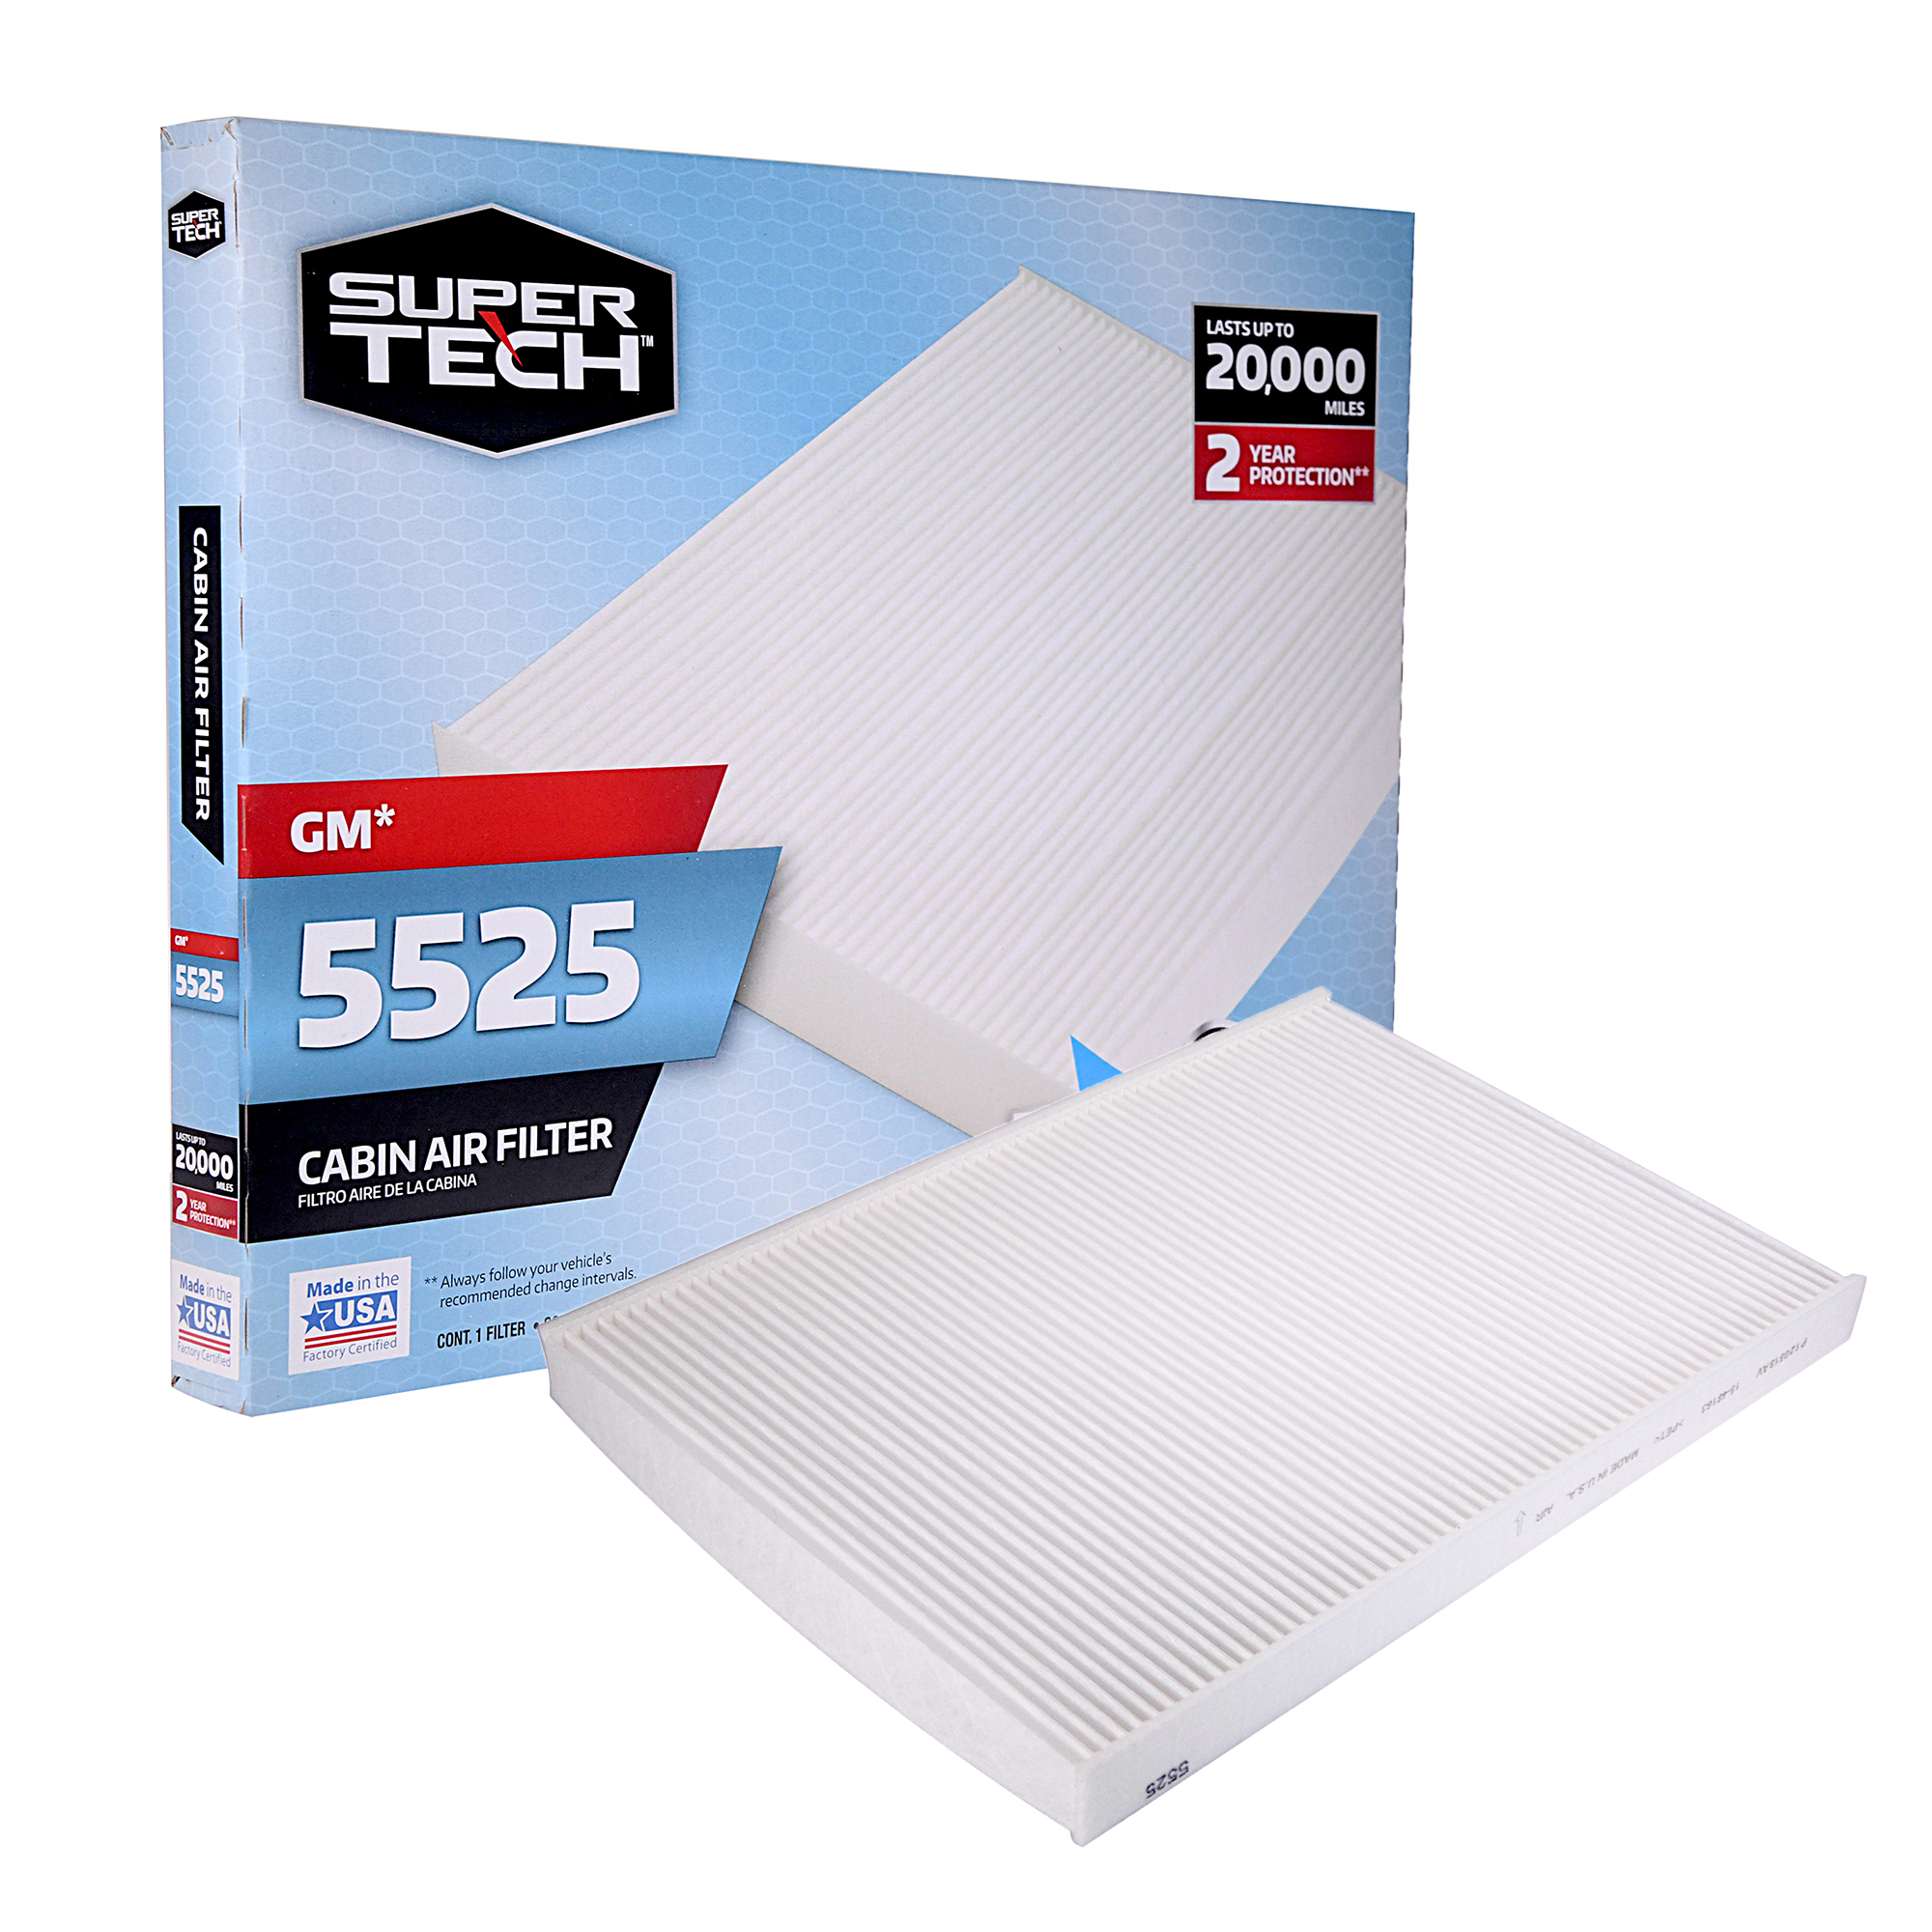 SuperTech Cabin Air Filter 5525, Replacement Air/Dust Filter for GM